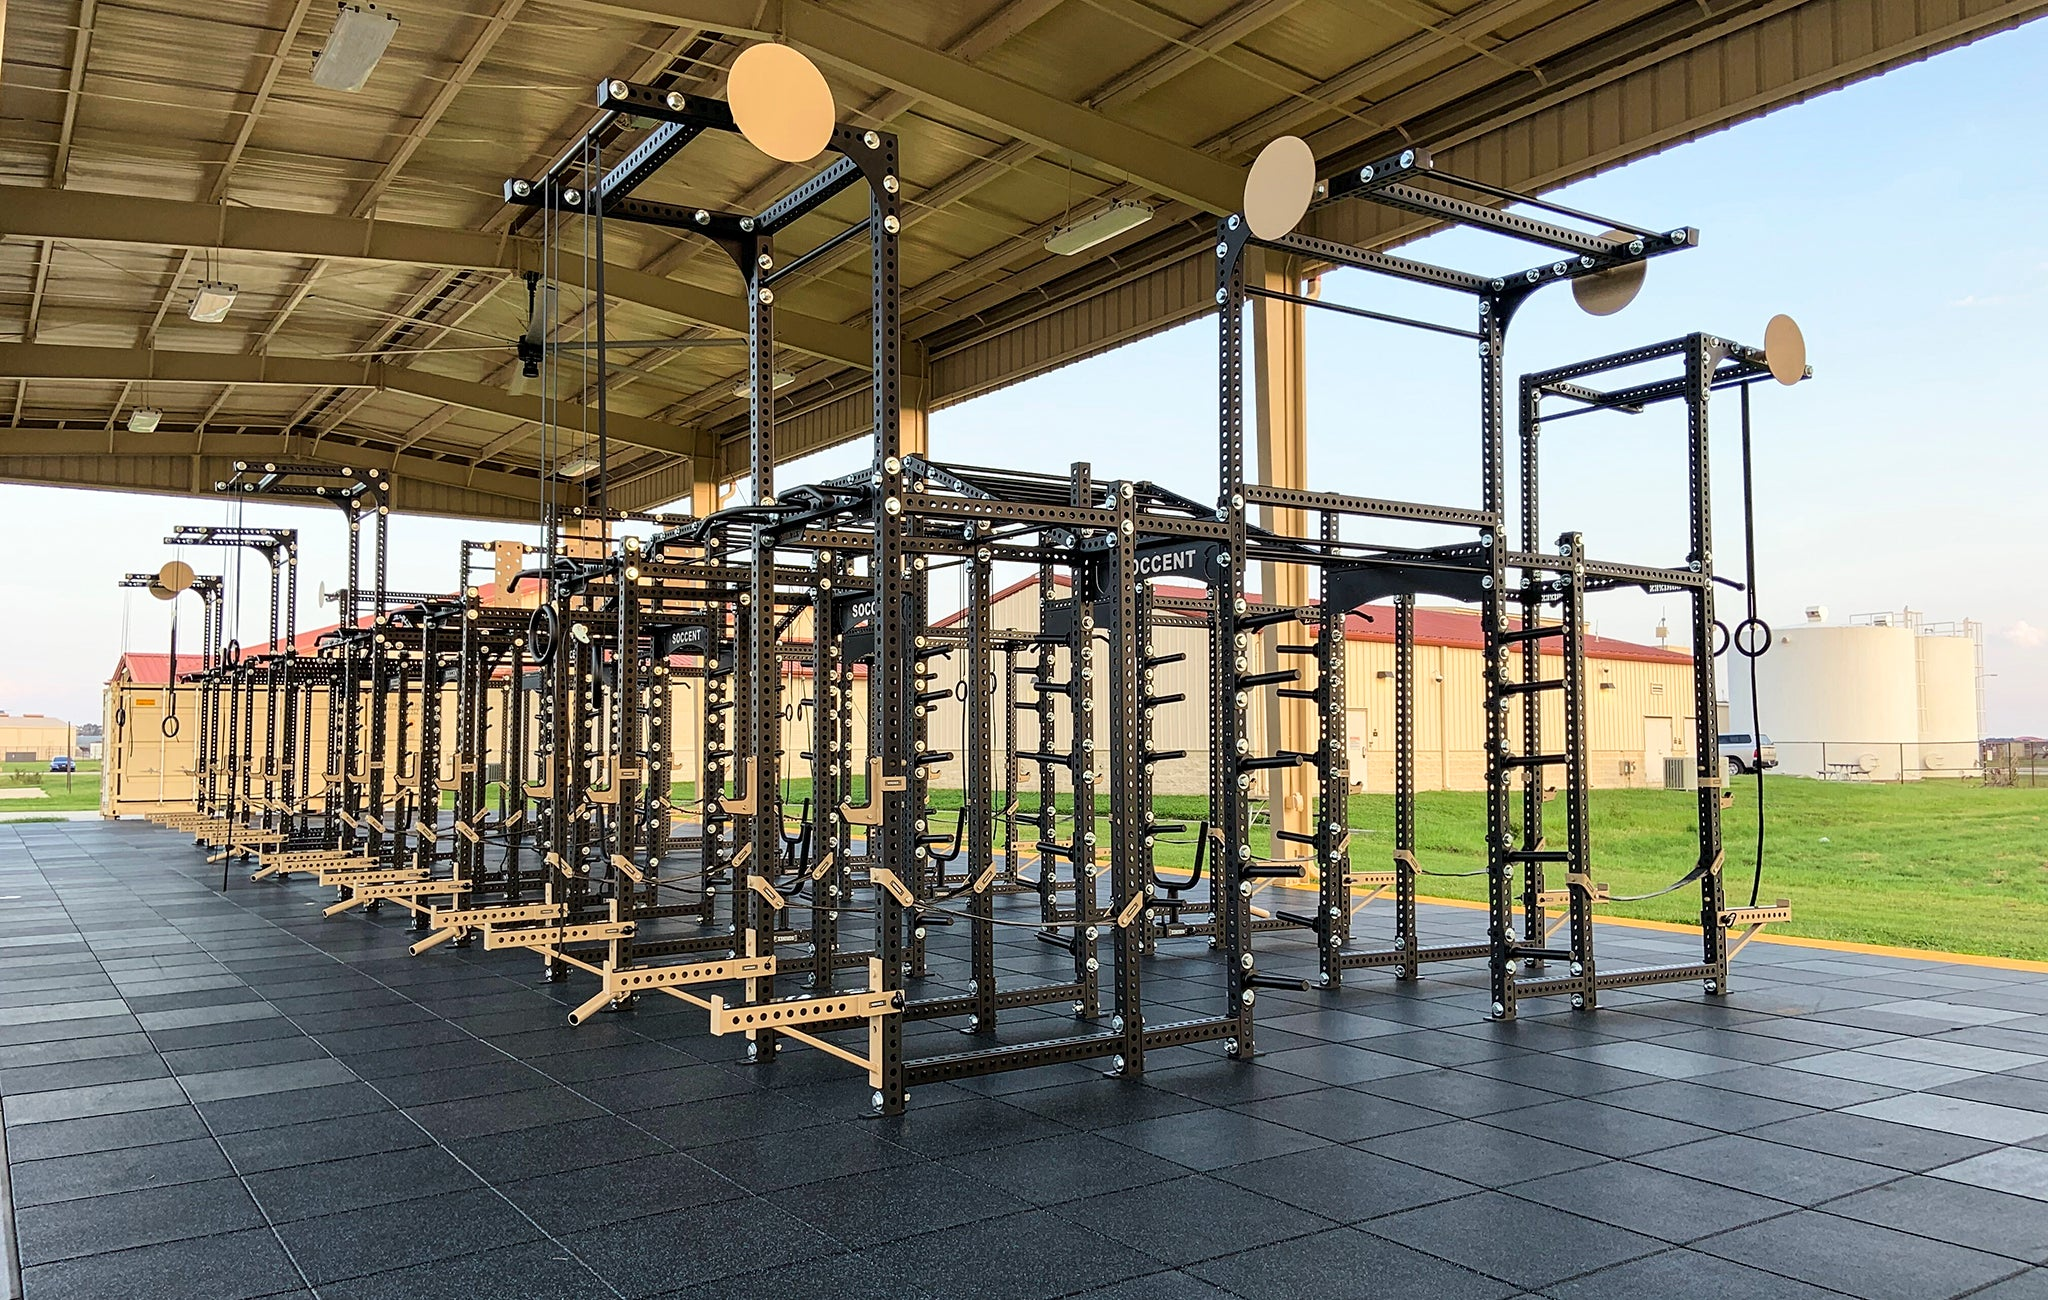 SOCCENT Military Weight Room